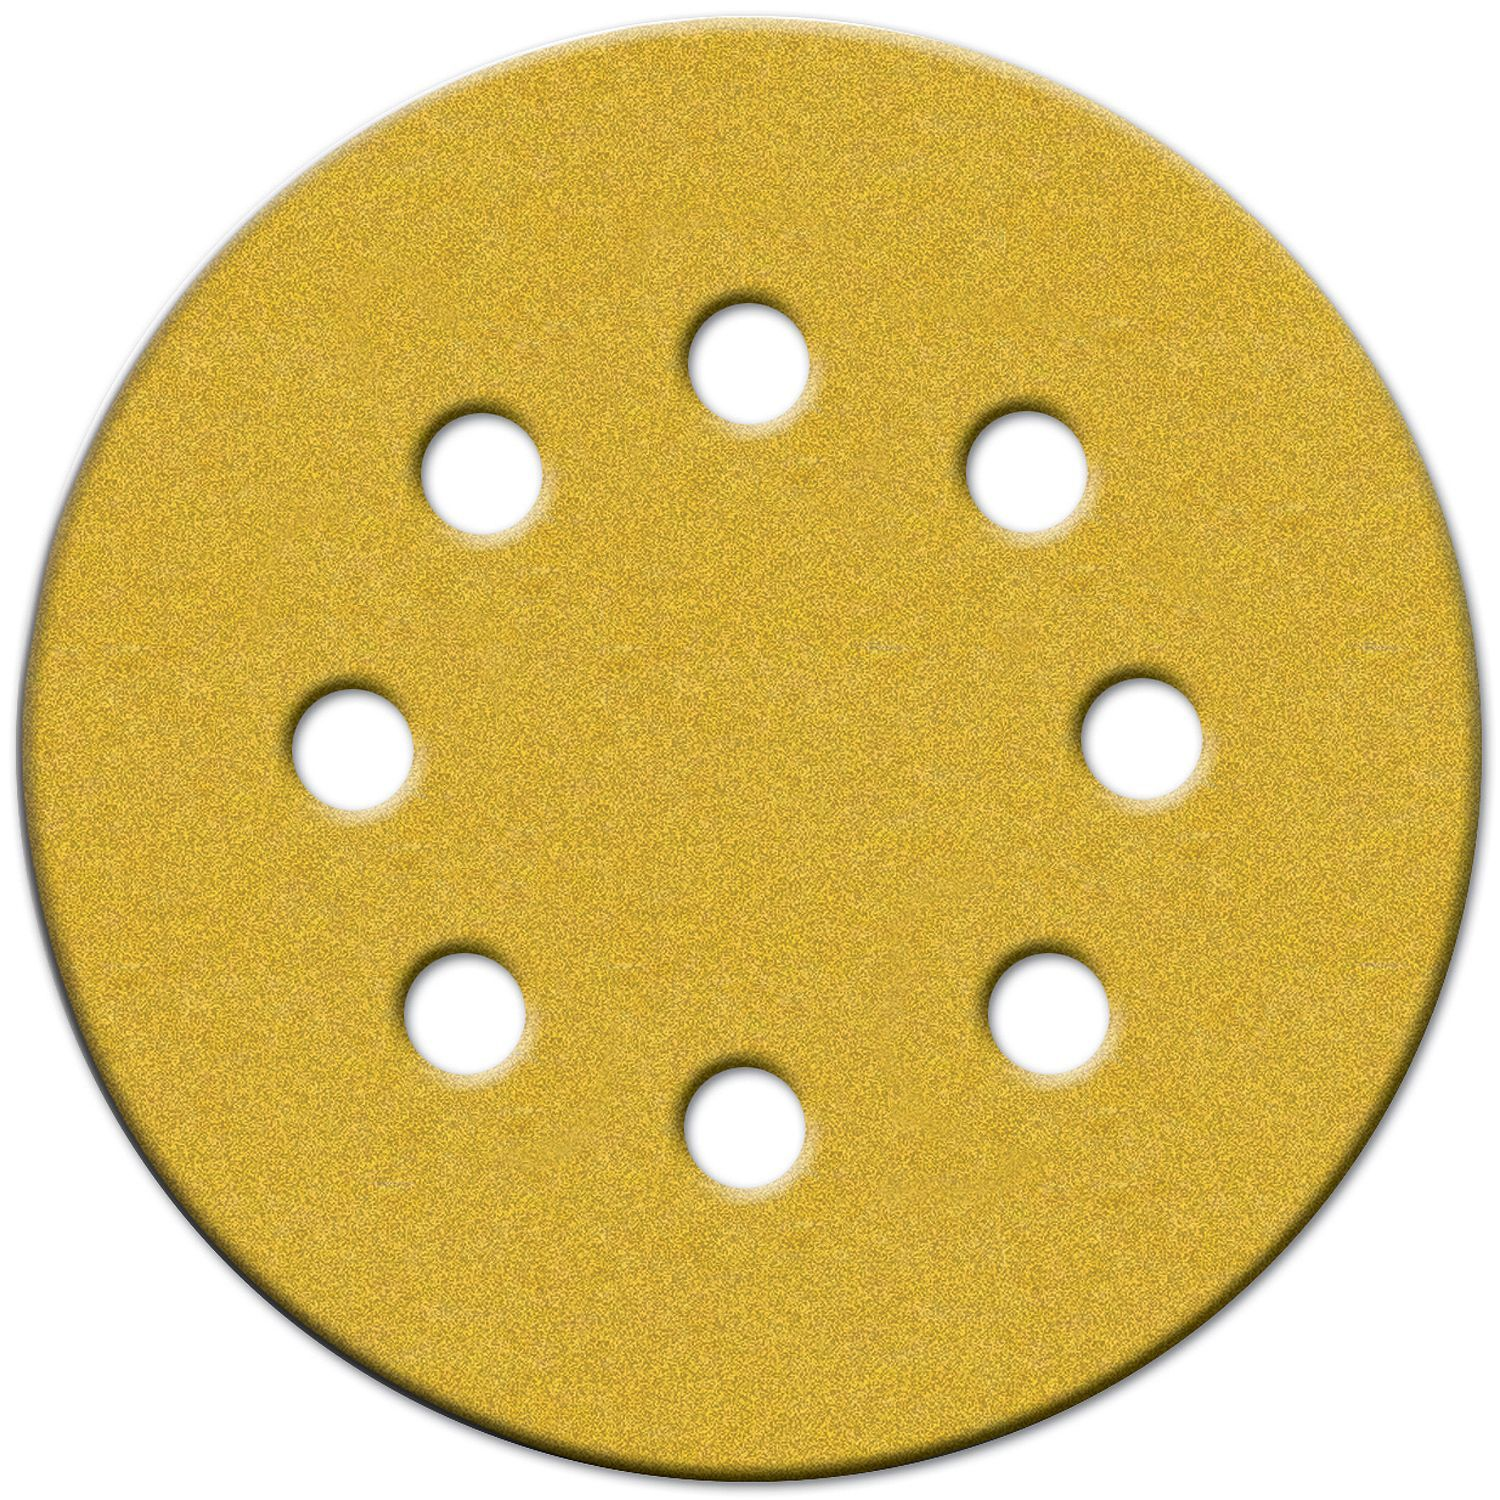 "Norton 49219 5"" 180 Grit Hook & Loop Sanding Discs With 8 Holes 25-count"